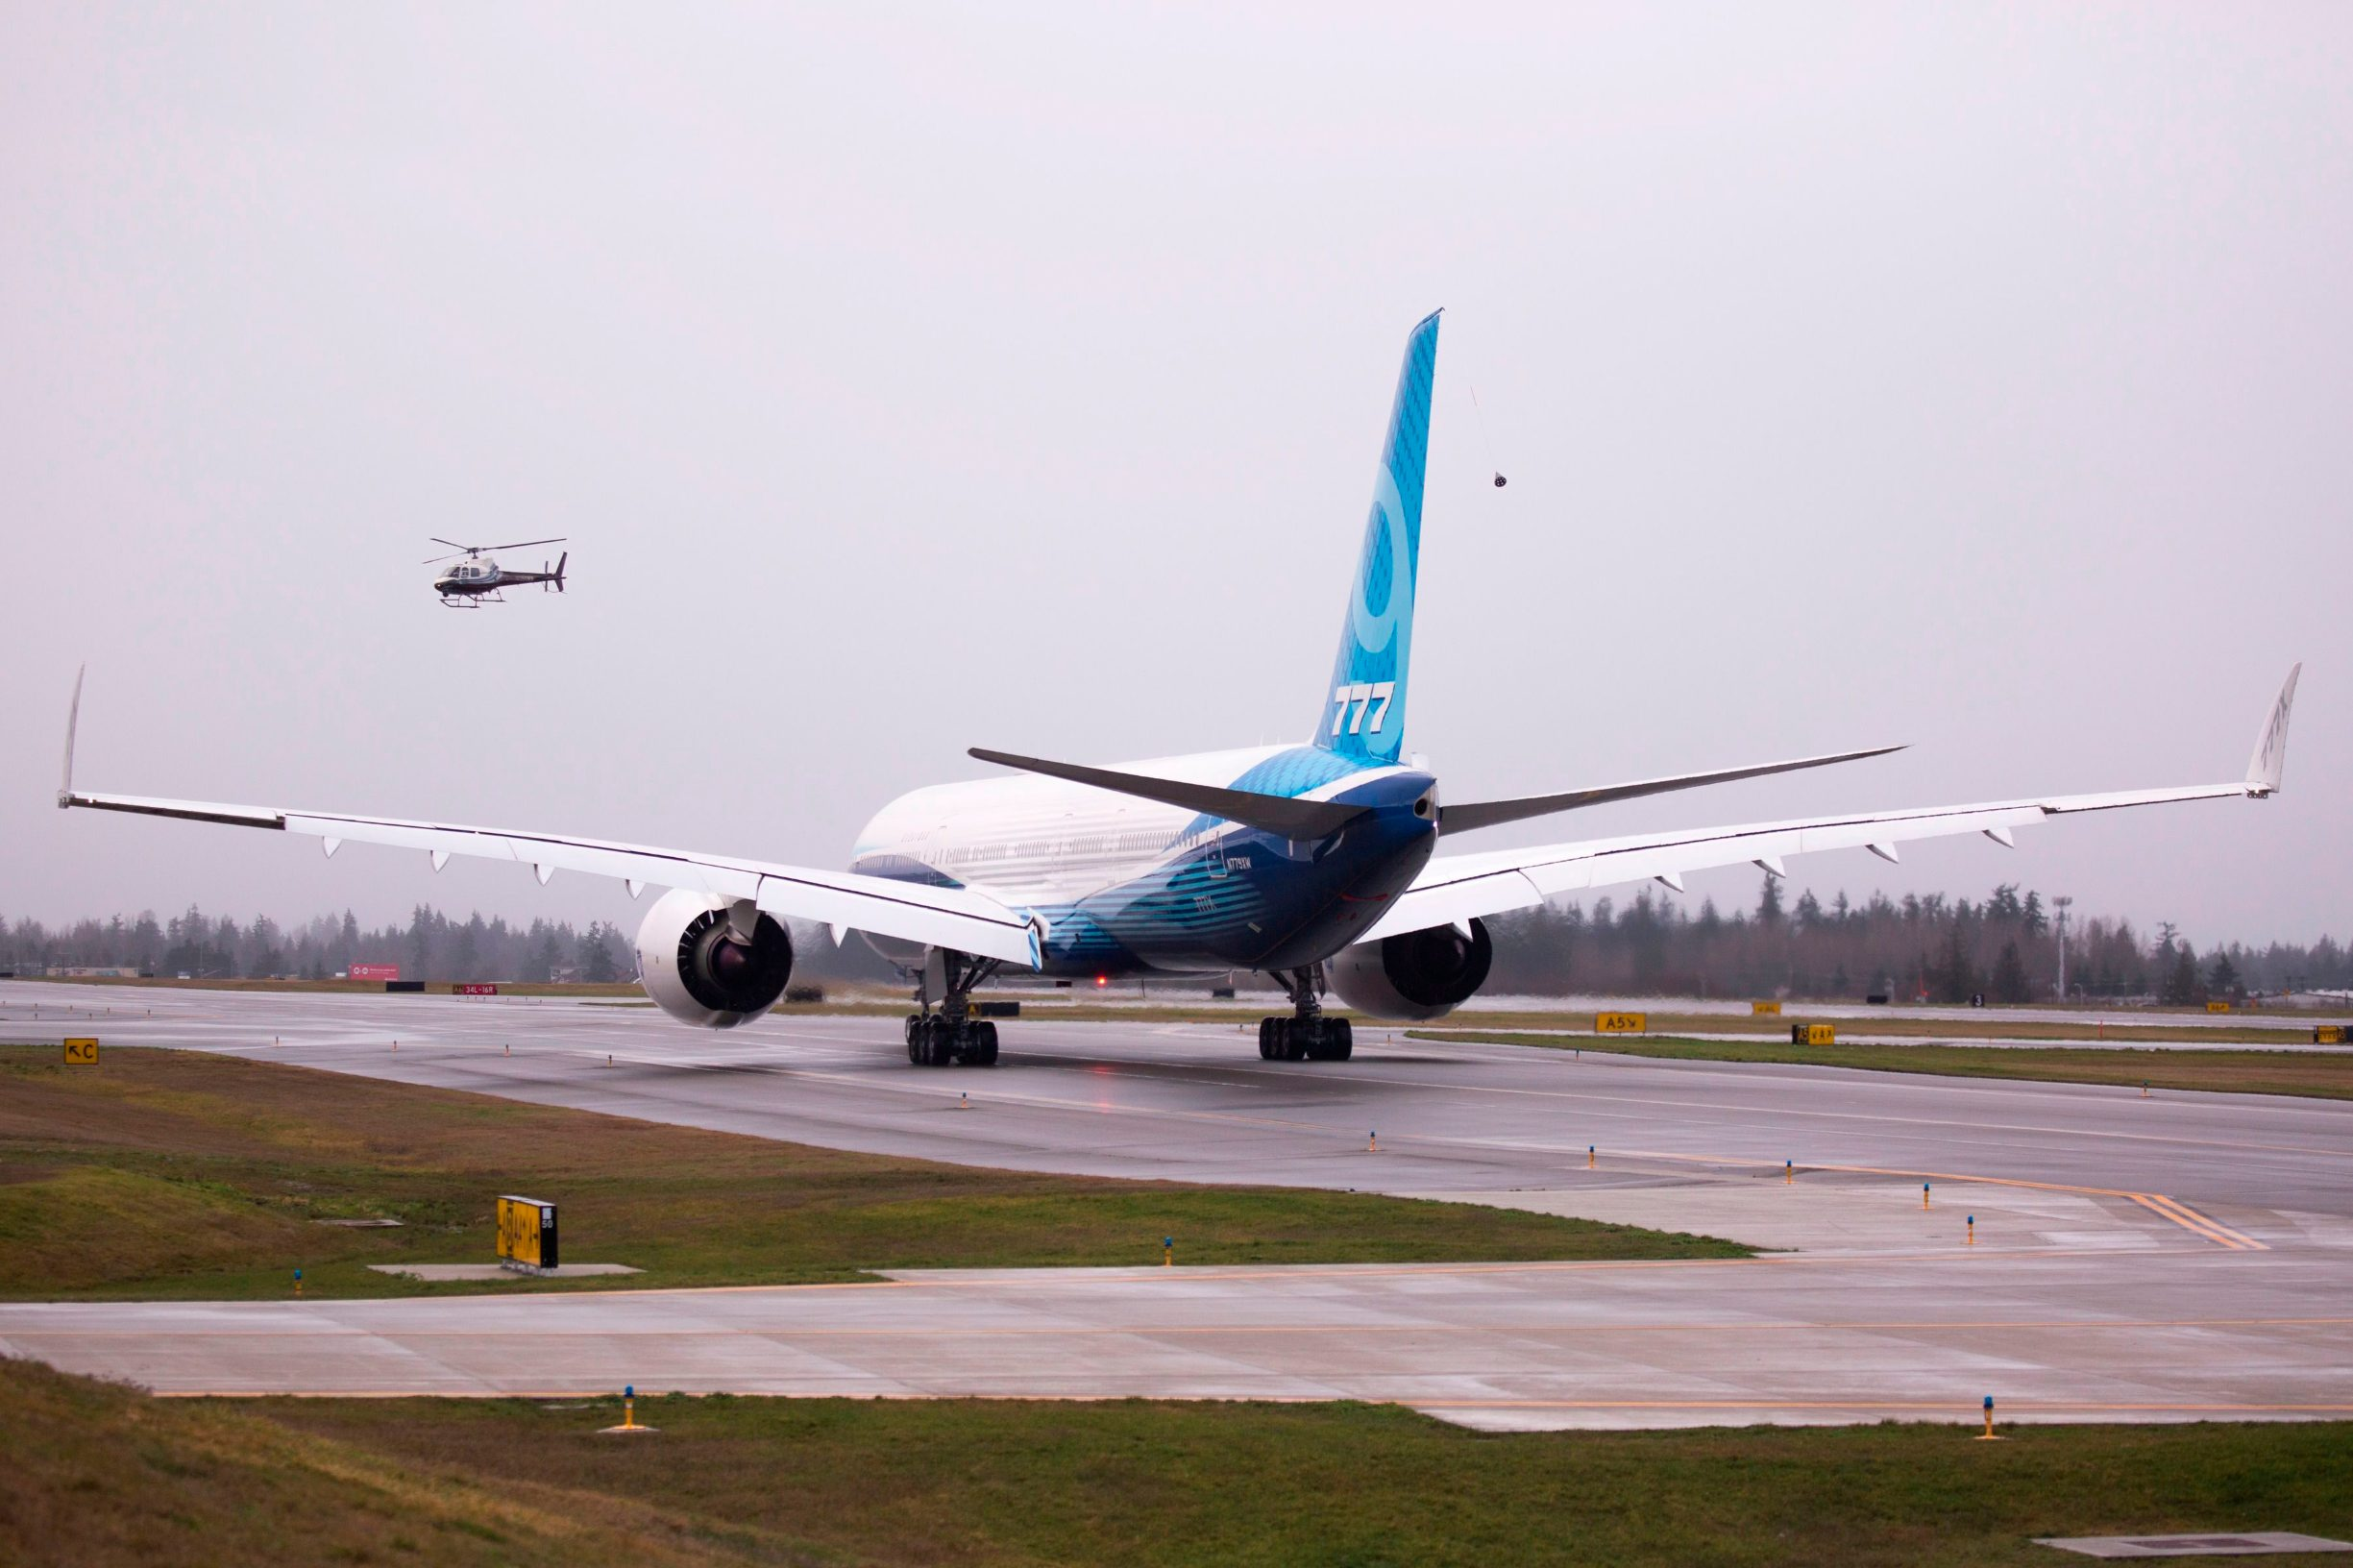 A helicopter follows a Boeing 777X airplane as it taxis before its inaugural flight at Paine Field in Everett, Washington on January 25, 2020. - Boeing's new long-haul 777X airliner made its first flight Saturday, a major step forward for the company whose broader prospects remain clouded by the 737 MAX crisis. The plane took off from a rain-slicked runway a few minutes after 10:00 am local time (1800 GMT), at Paine Field in Everett, Washington, home to Boeing's manufacturing site in the northwestern US. (Photo by Jason Redmond / AFP)